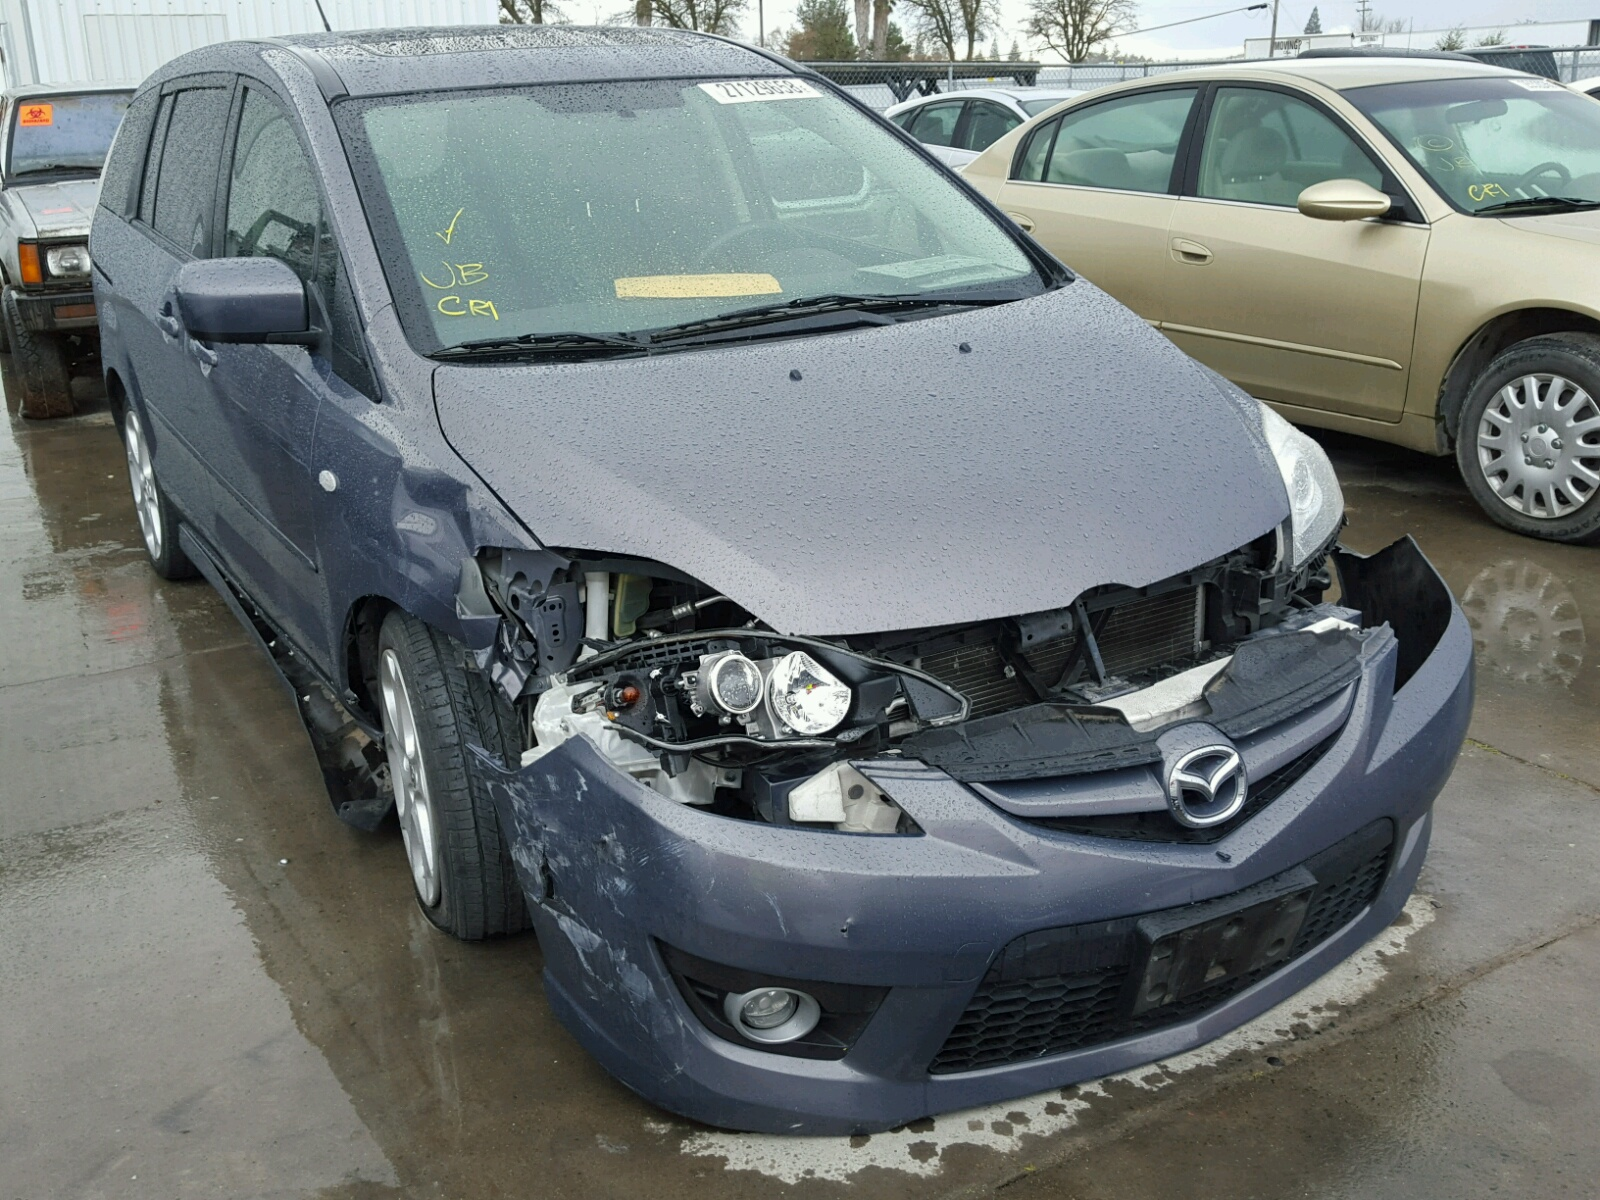 East Fayetteville Auto >> Auto Auction Ended on VIN: JM1CR293480316413 2008 MAZDA MAZDA5 in CO - DENVER SOUTH